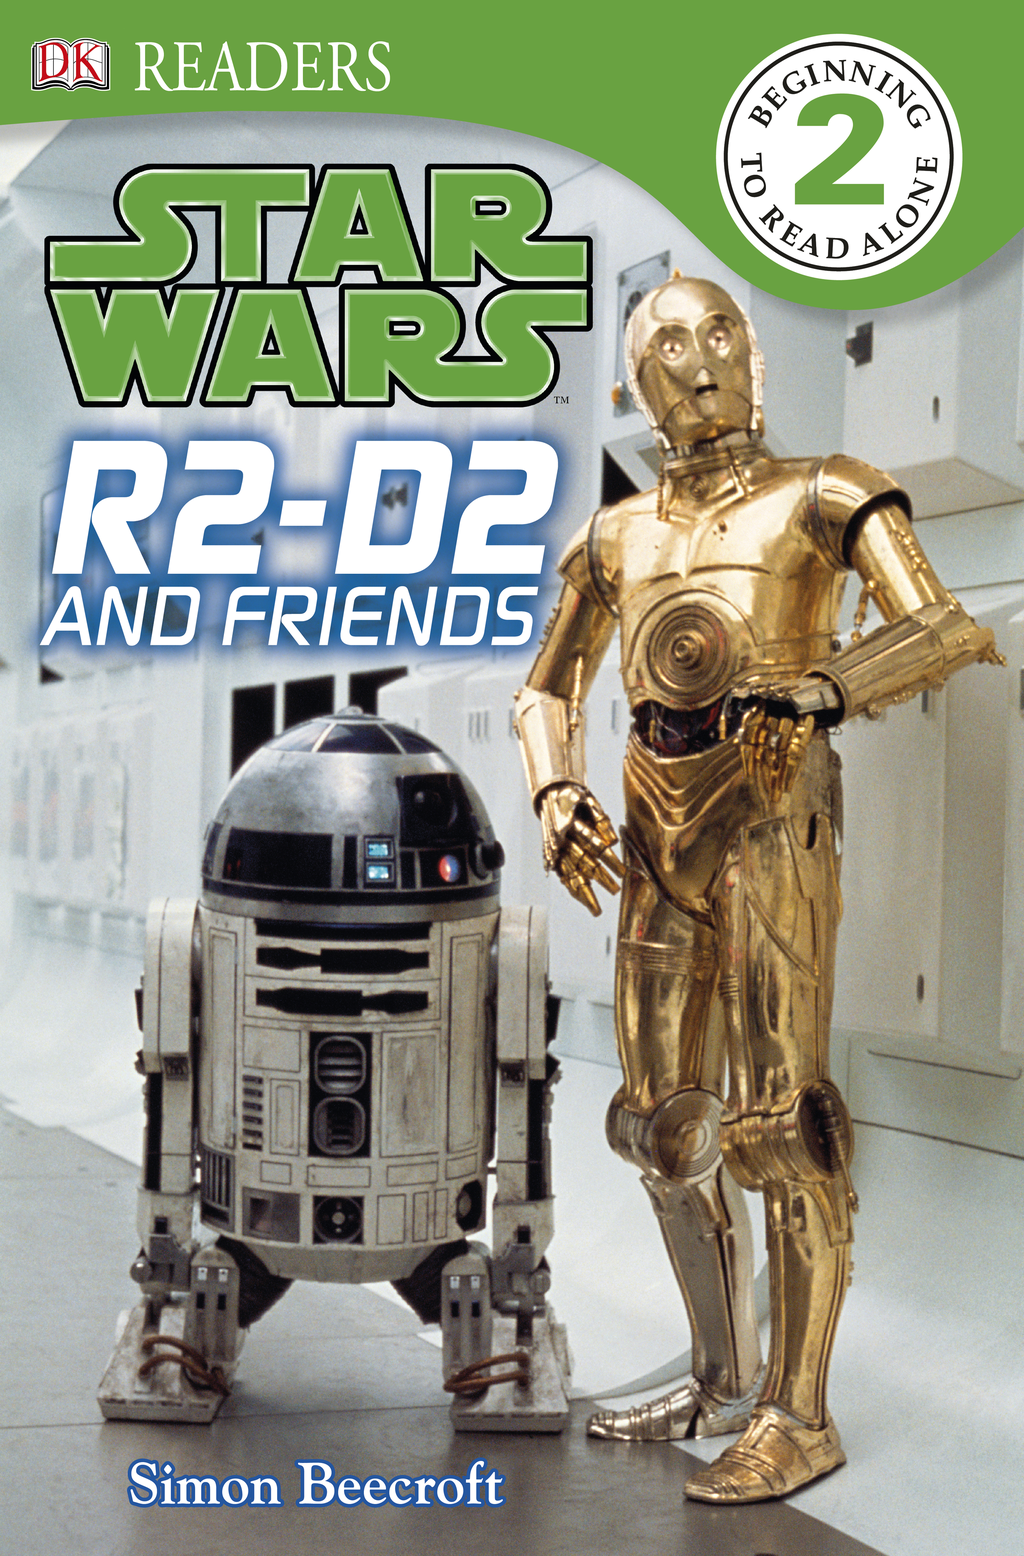 Star Wars R2 D2 and Friends